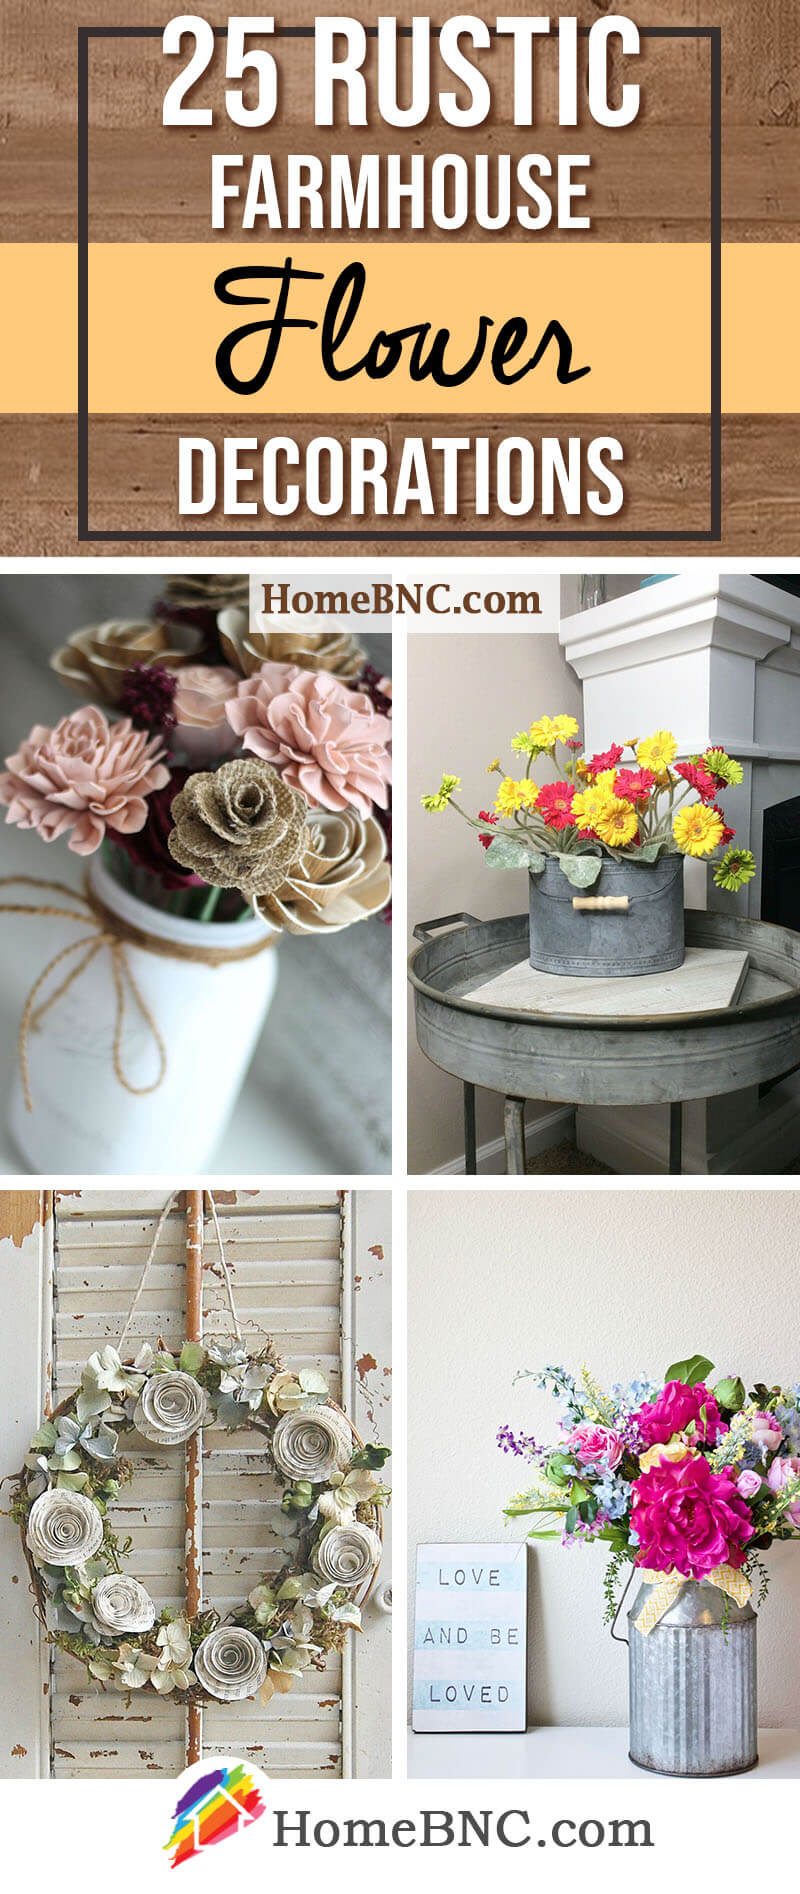 25 Sweet Farmhouse Flower Decoration Ideas To Turn Your Home Into A Country  Cottage